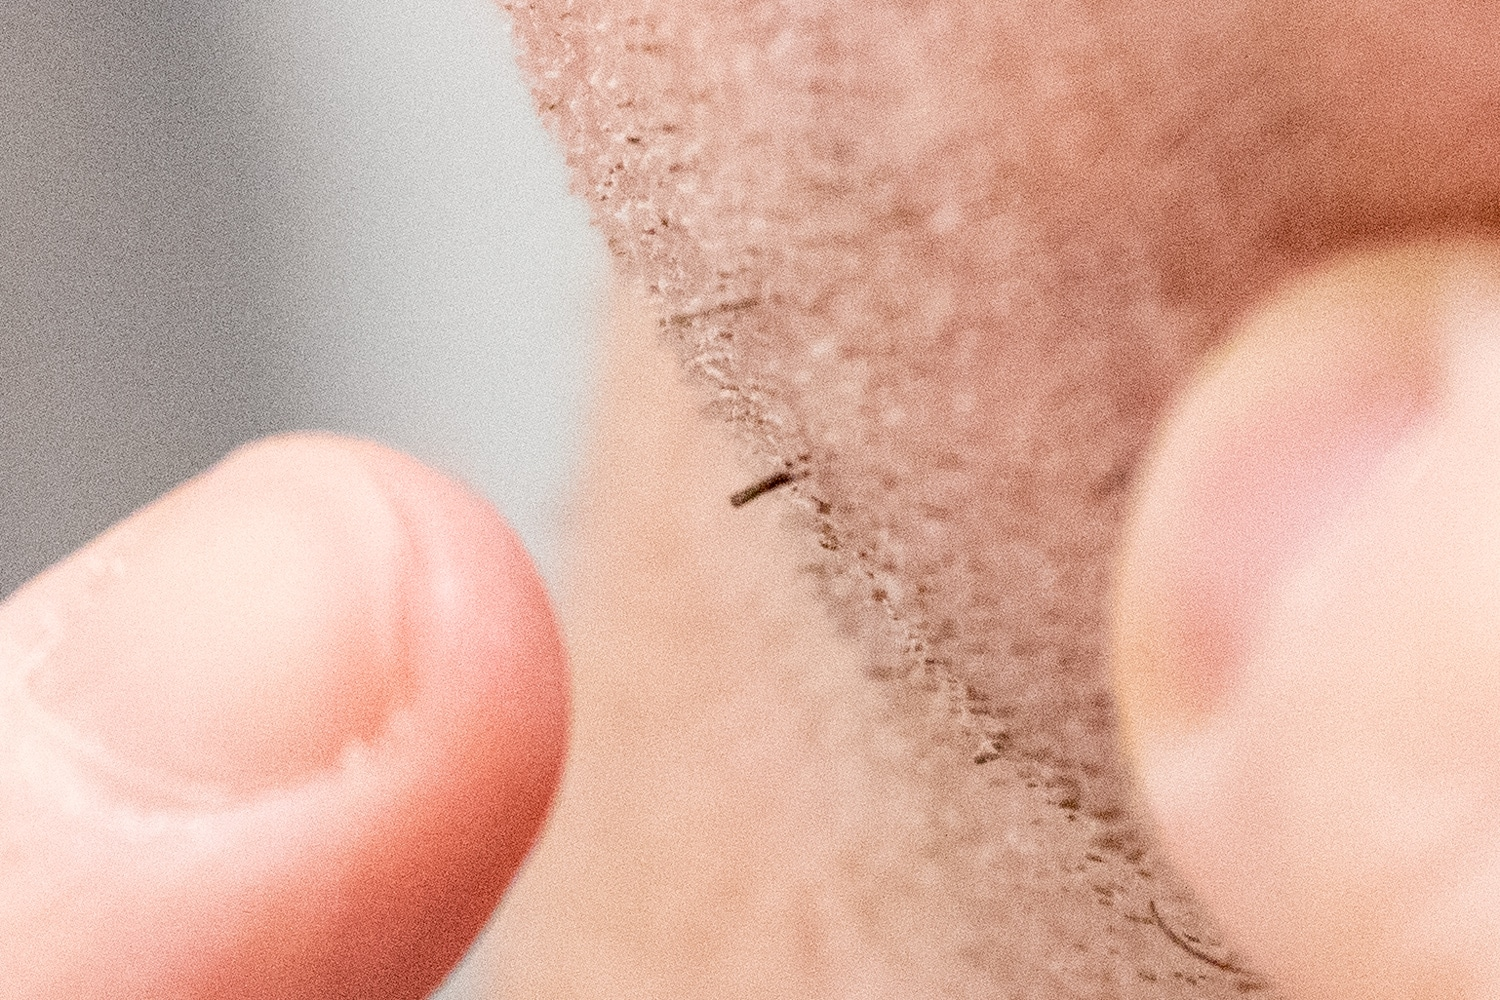 Why do multiple hairs grow out of one follicle